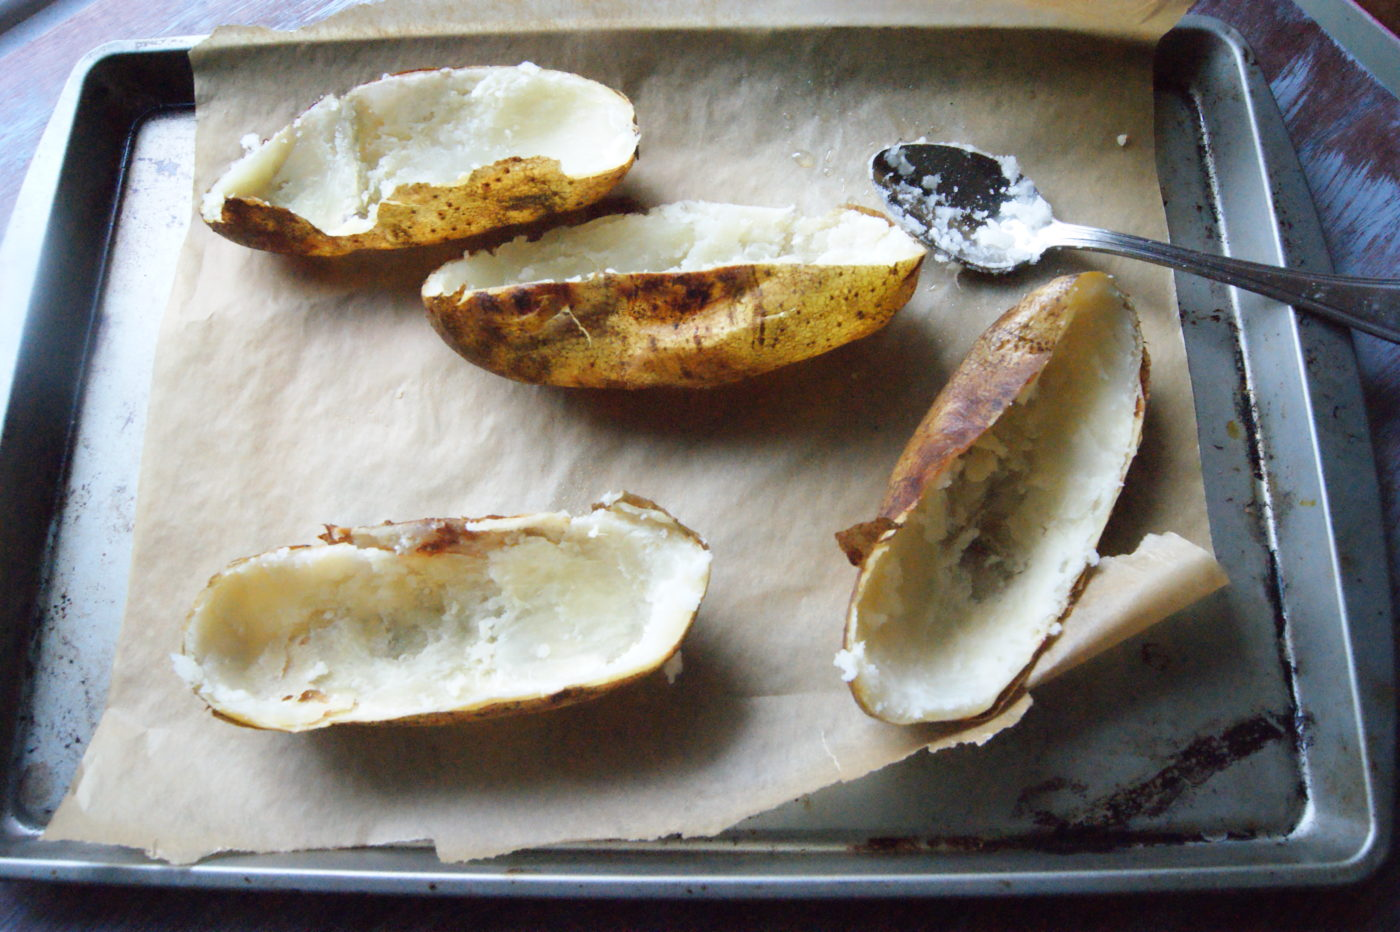 Twice baked potatoes are a perfect side dish.